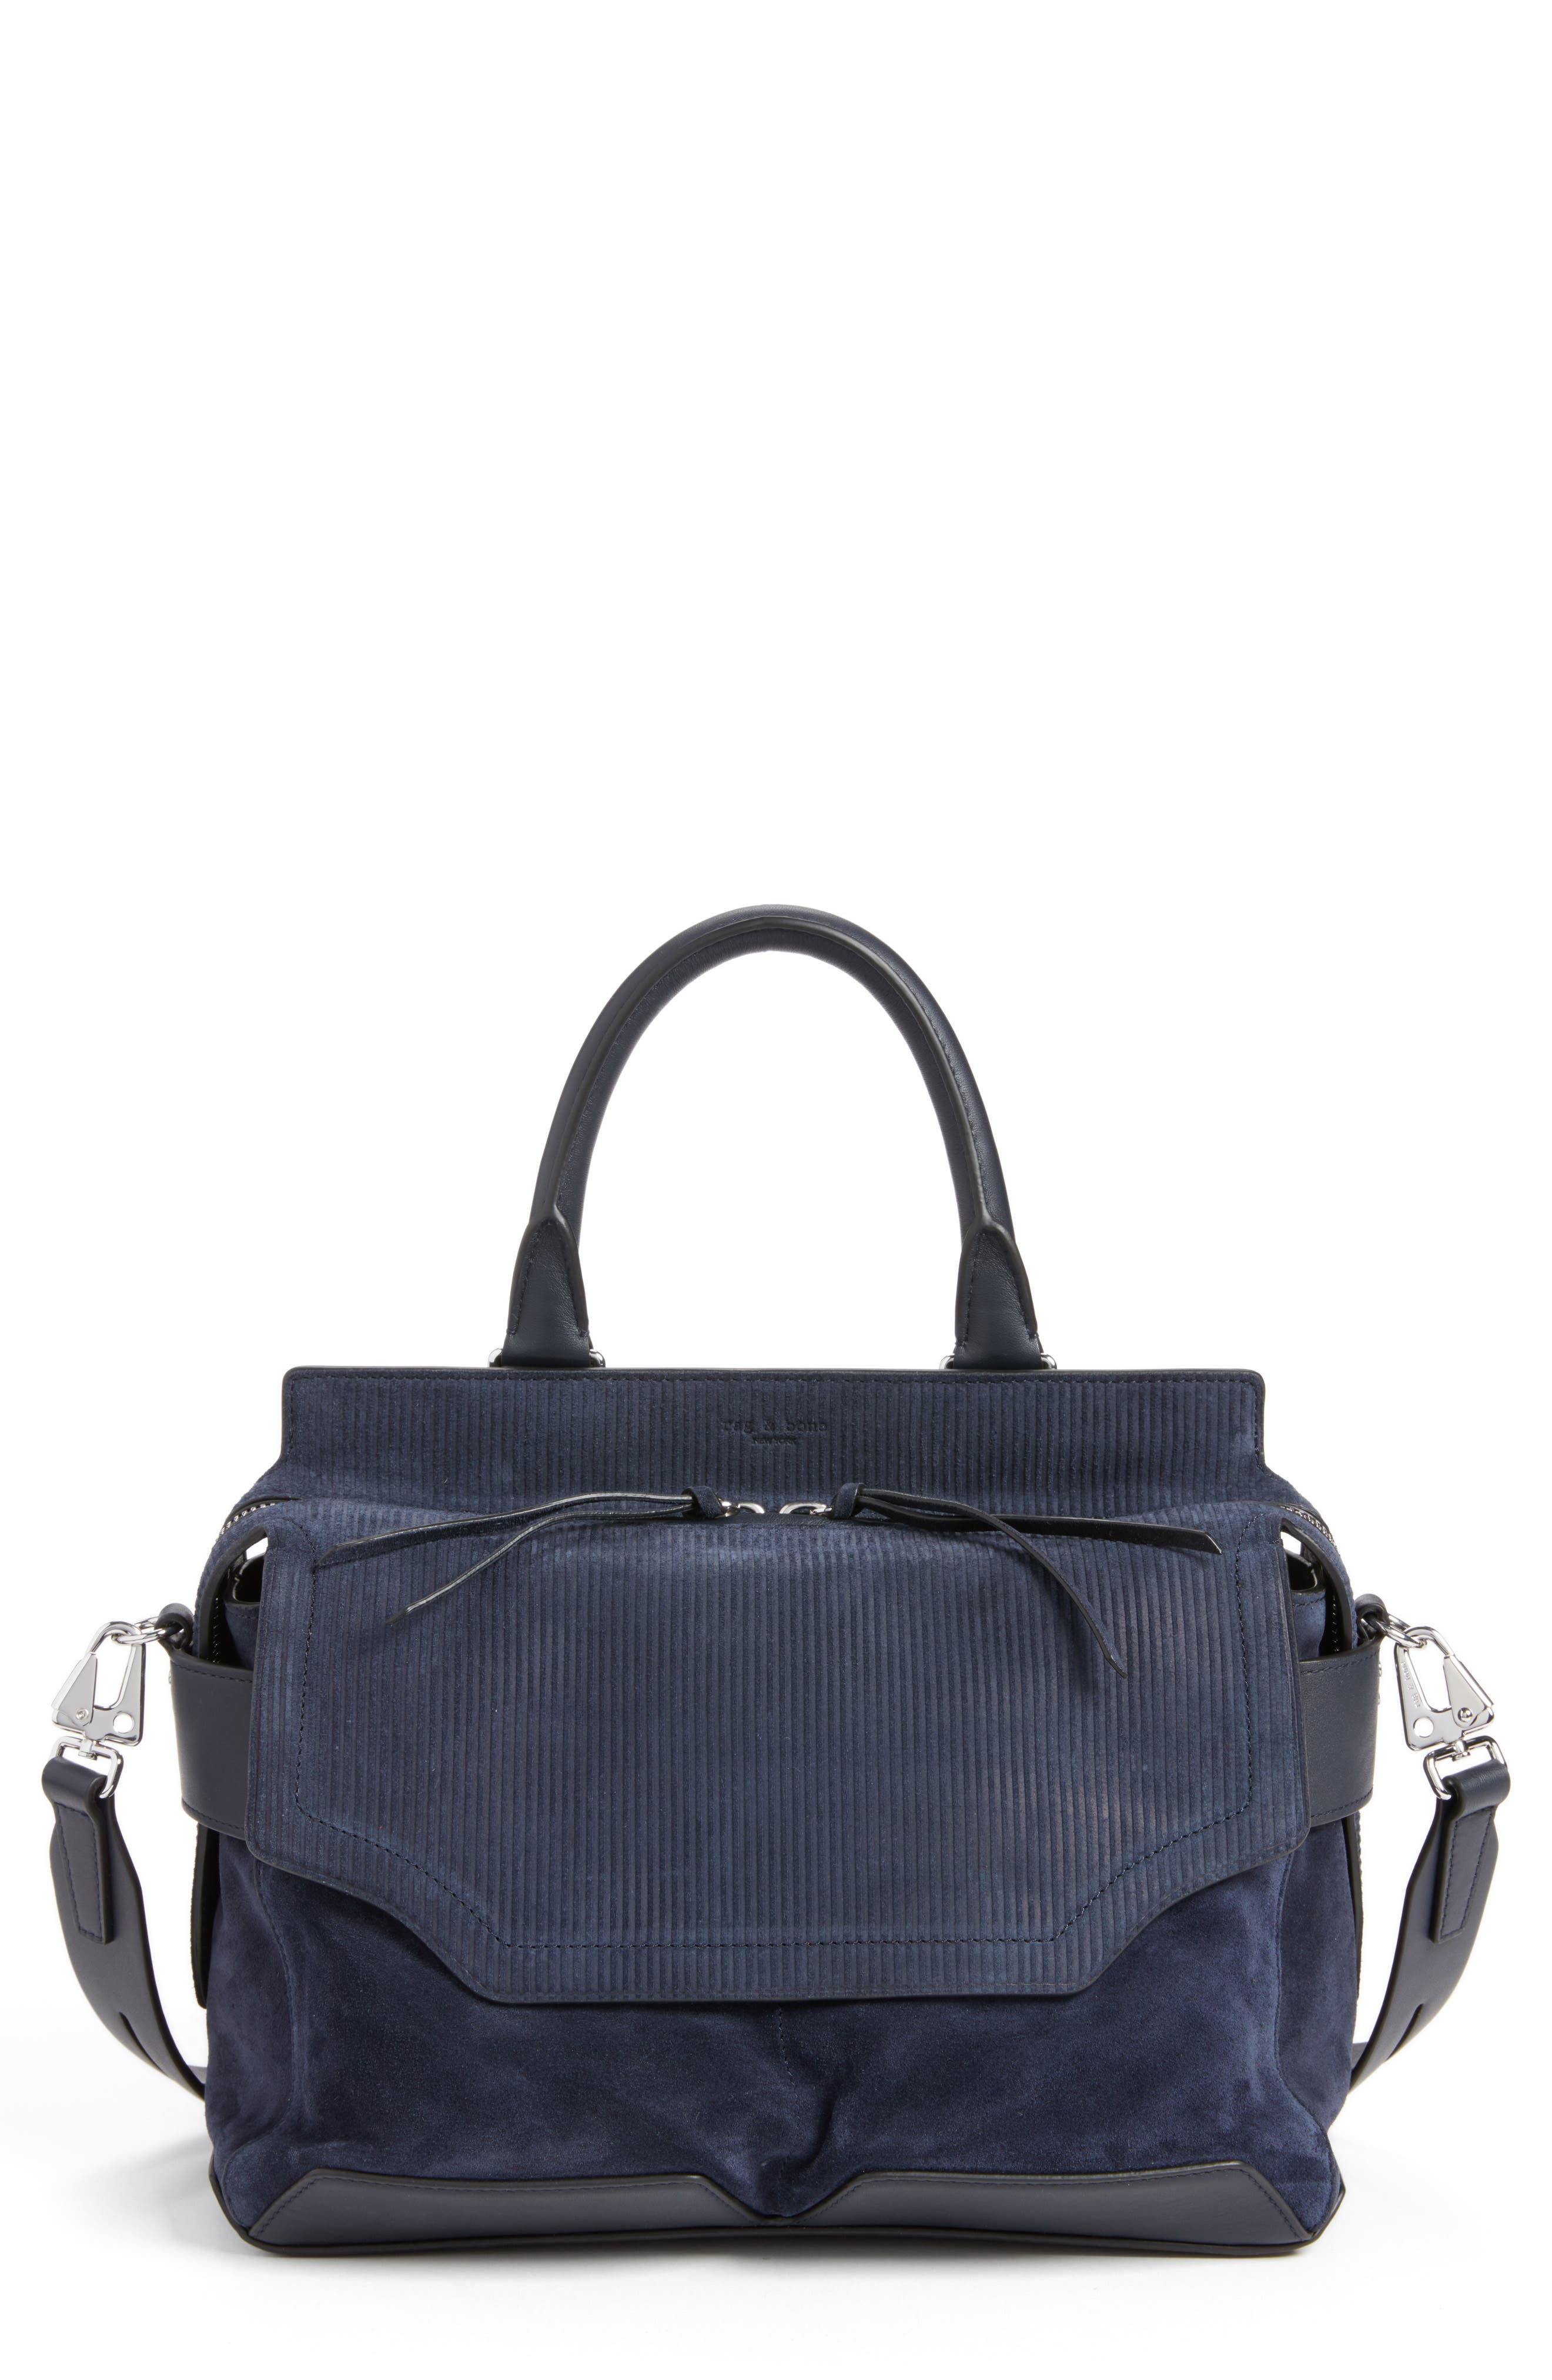 Pilot Calfskin Leather Satchel,                             Main thumbnail 1, color,                             Navy Suede